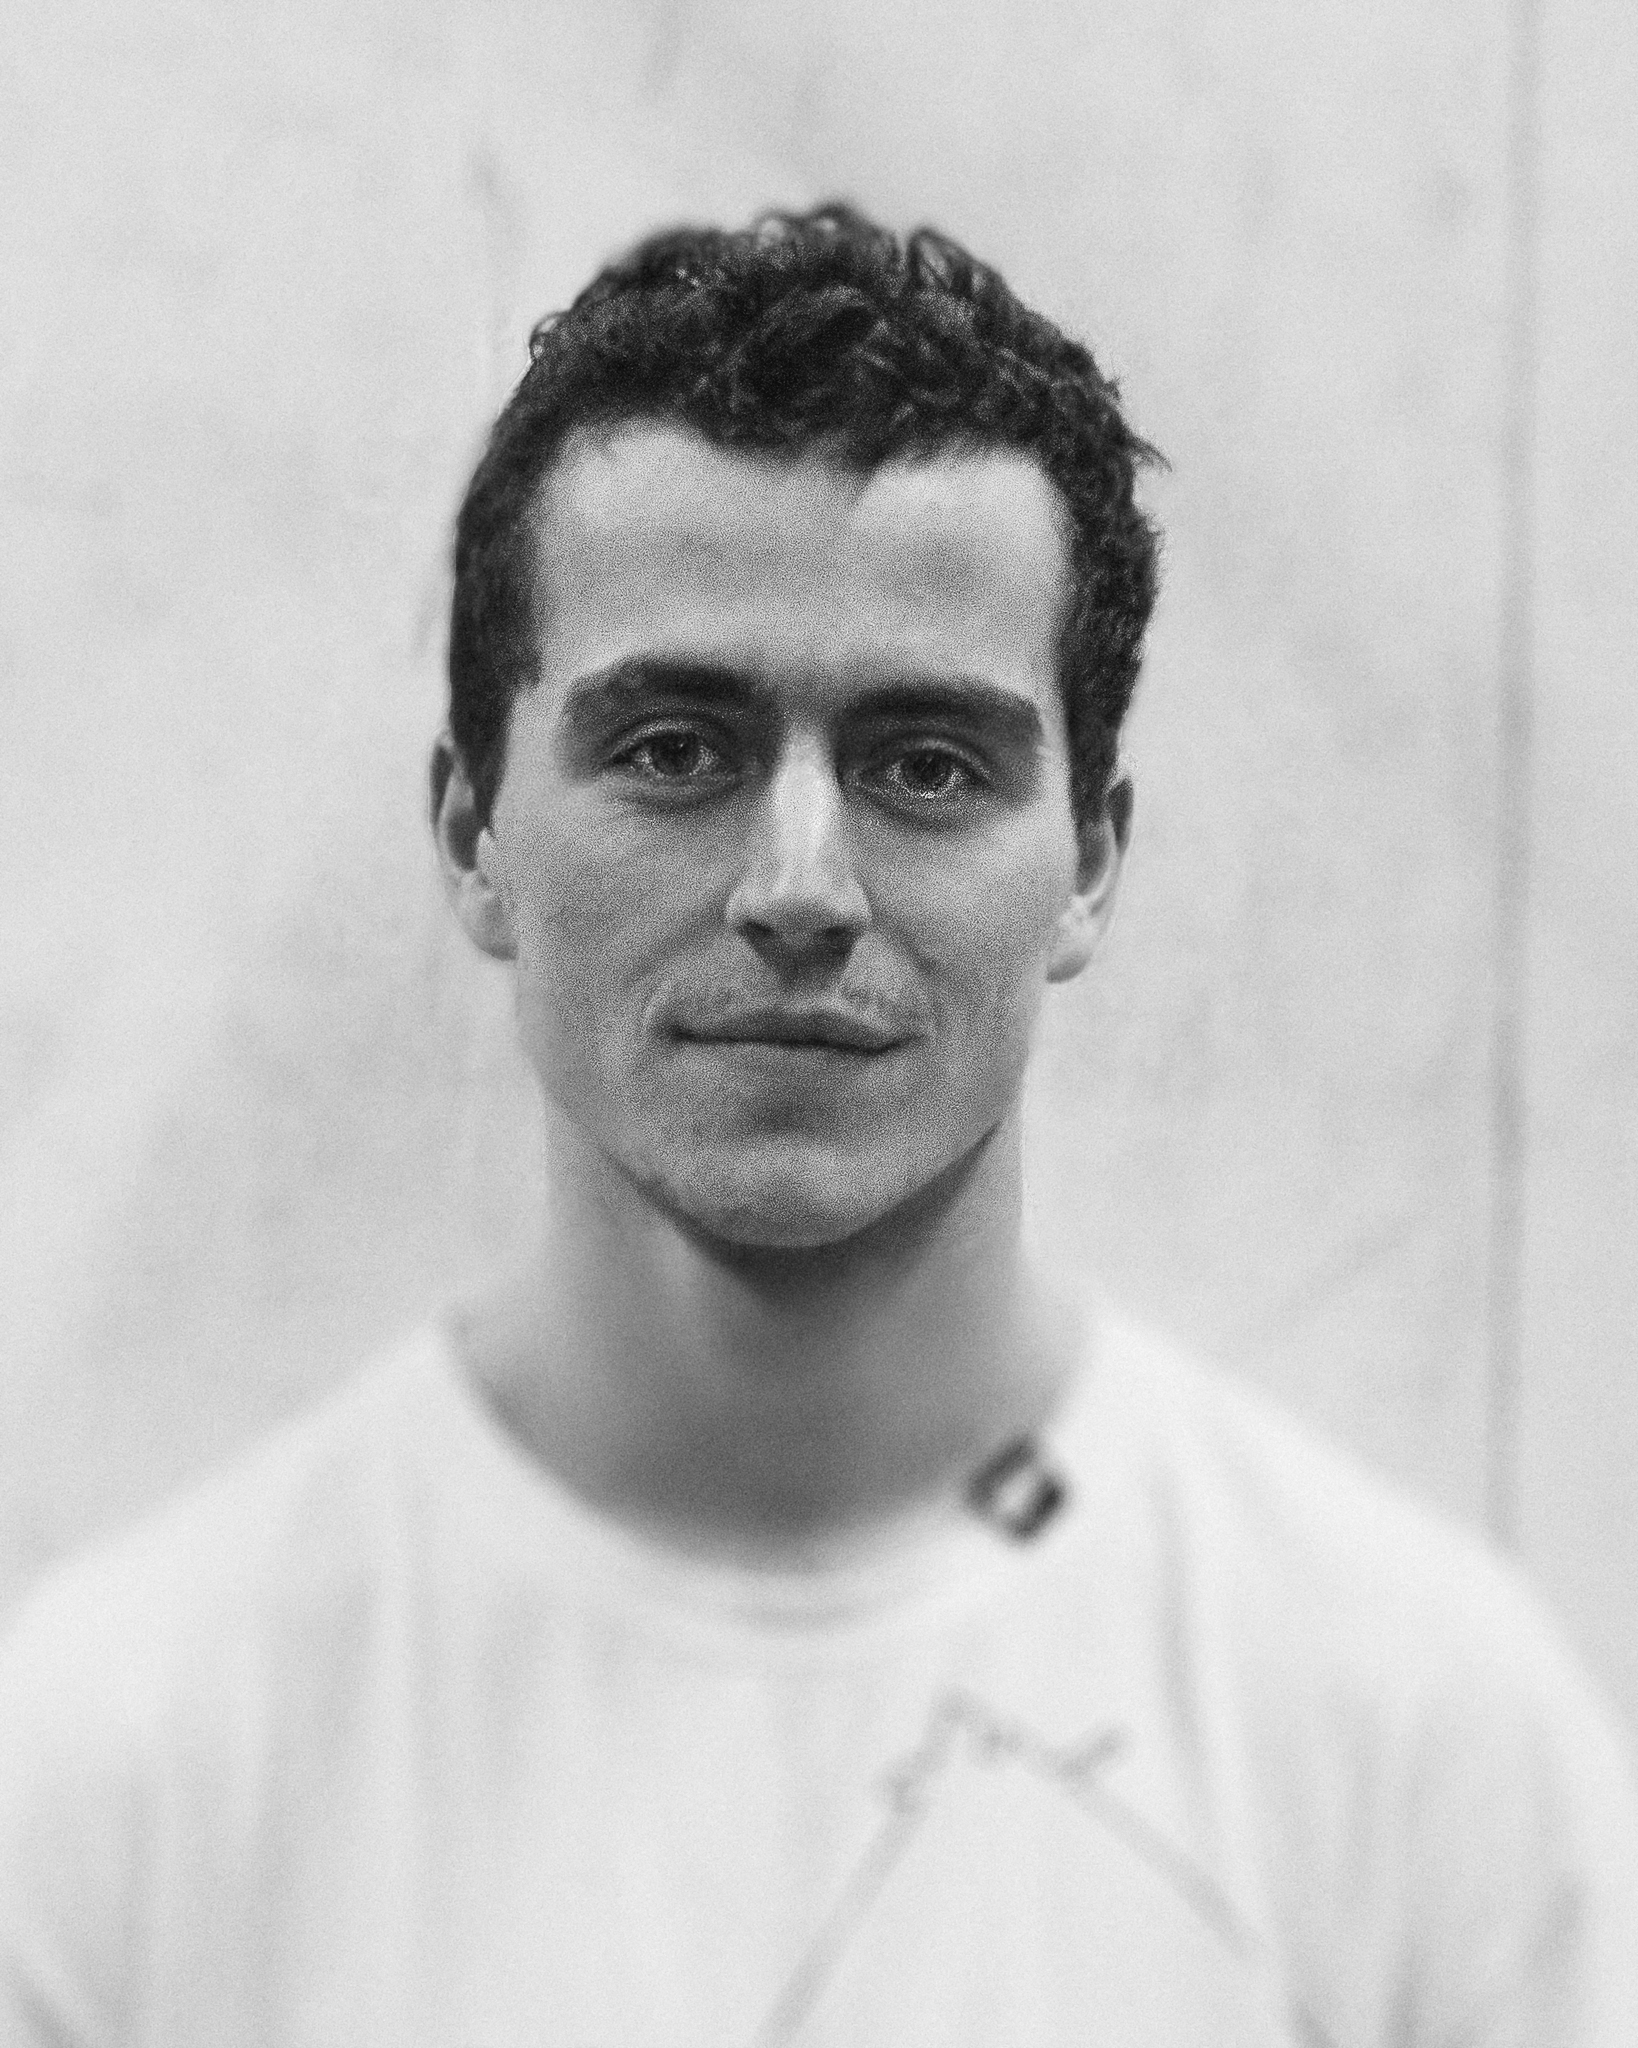 - I am Luciano Balestra and freerunning is my life passion.As a young, 6-year-old, boy started with Capoeira. From that point on the only thing I wanted to learn was a Backflip! When I was 14 years old I finally landed my first backflip! From that moment freerunning became part of my whole life.After finishing high school I started traveling and I met freerunners from over the whole world! When I came back my best friend, Gaetano Carretto, was organizing freerunning events where I volunteered. From a volunteer I worked myself up to co-founder of our company which now a days has multiple freerunning facilities.